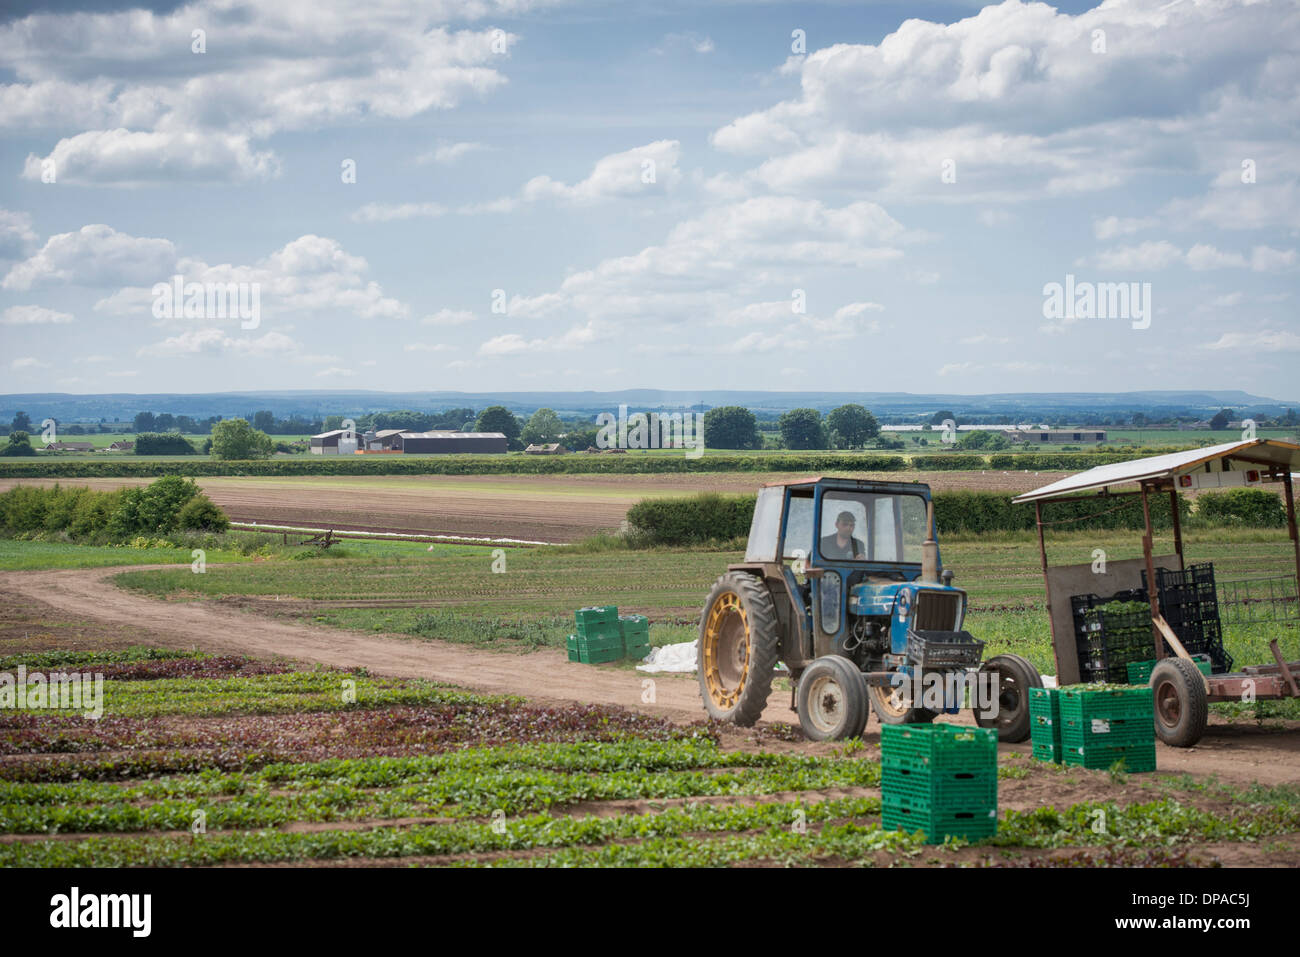 Workers driving tractor - Stock Image